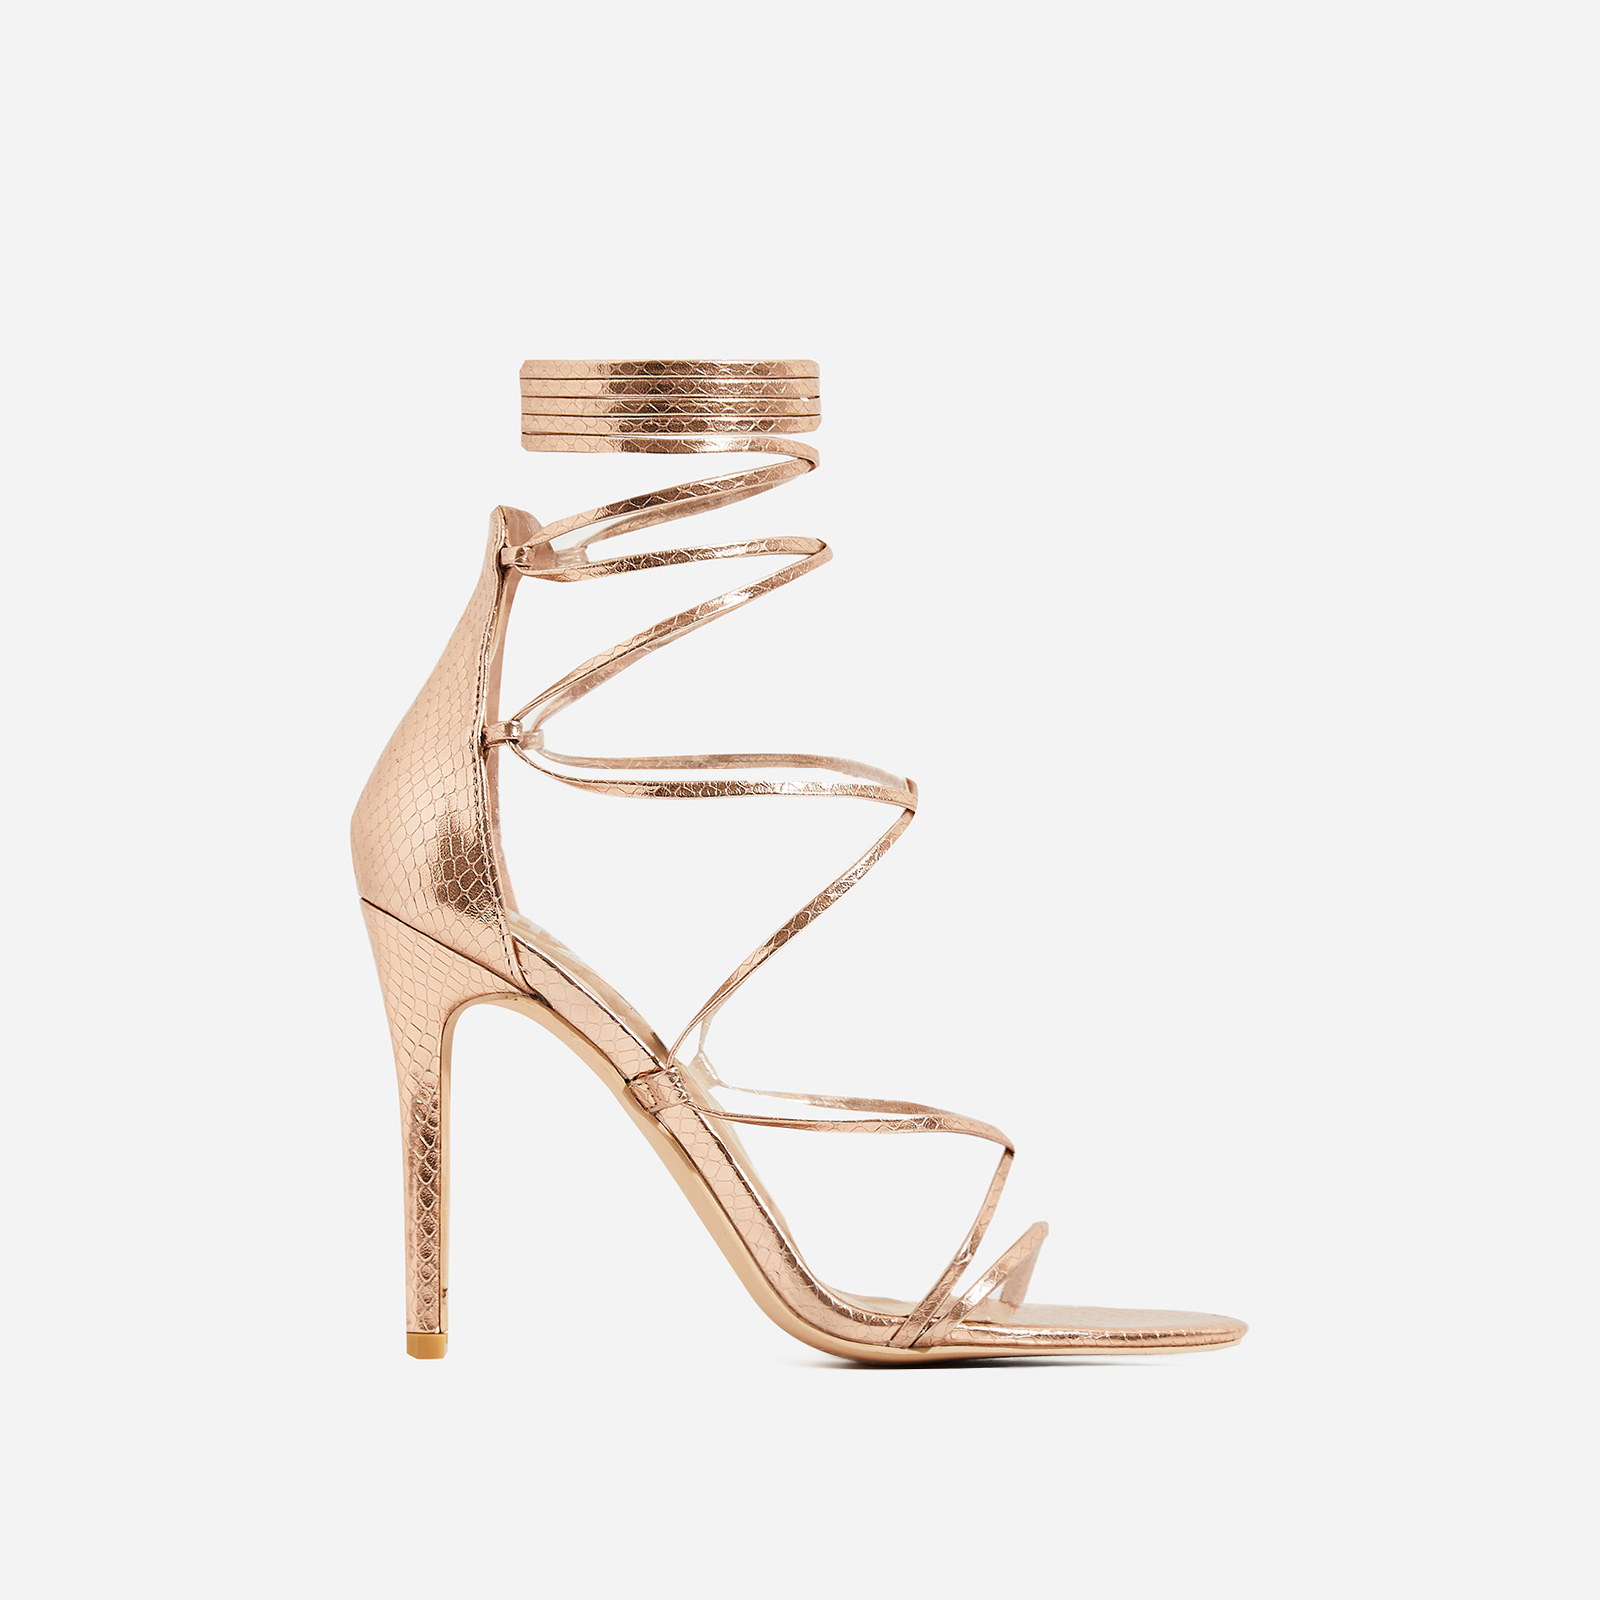 Brooklyn Lace Up Heel In Rose Gold Snake Print Faux Leather